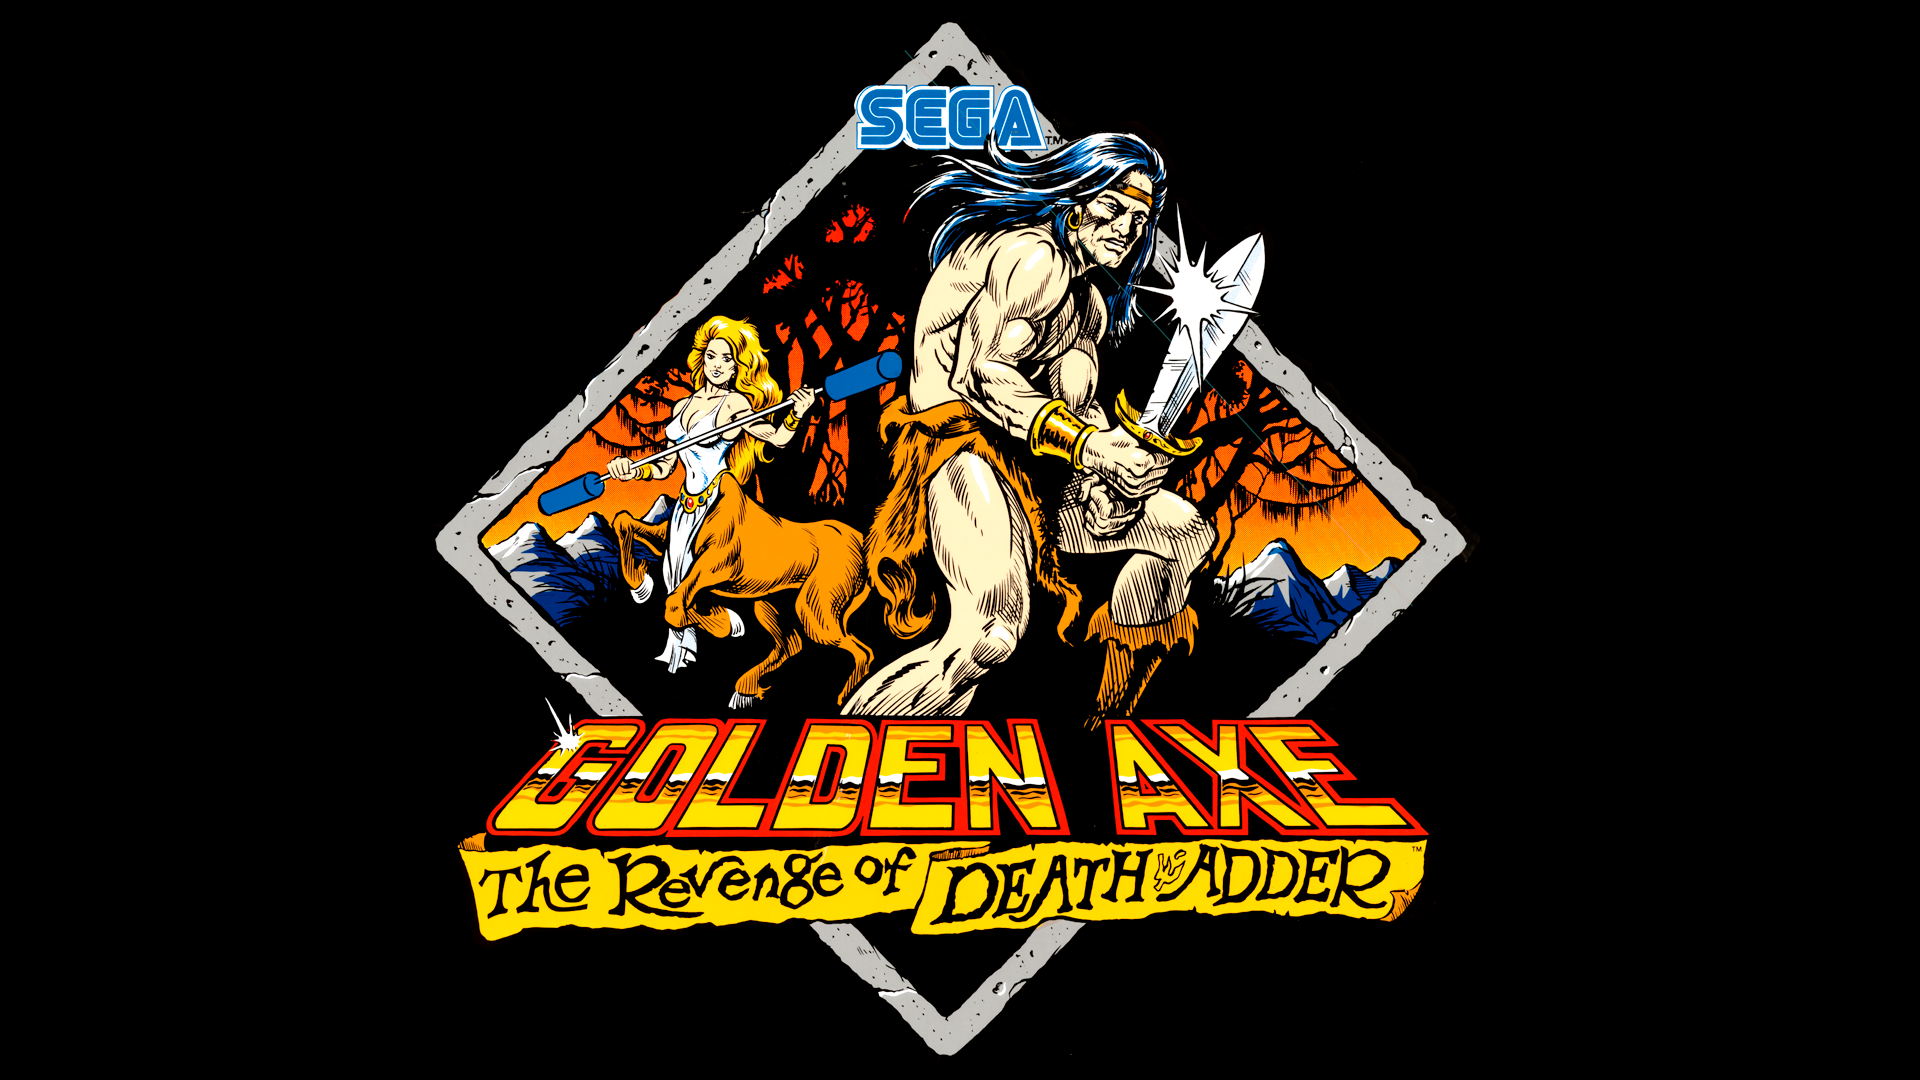 Golden Axe The Revenge Of Death Adder Details Launchbox